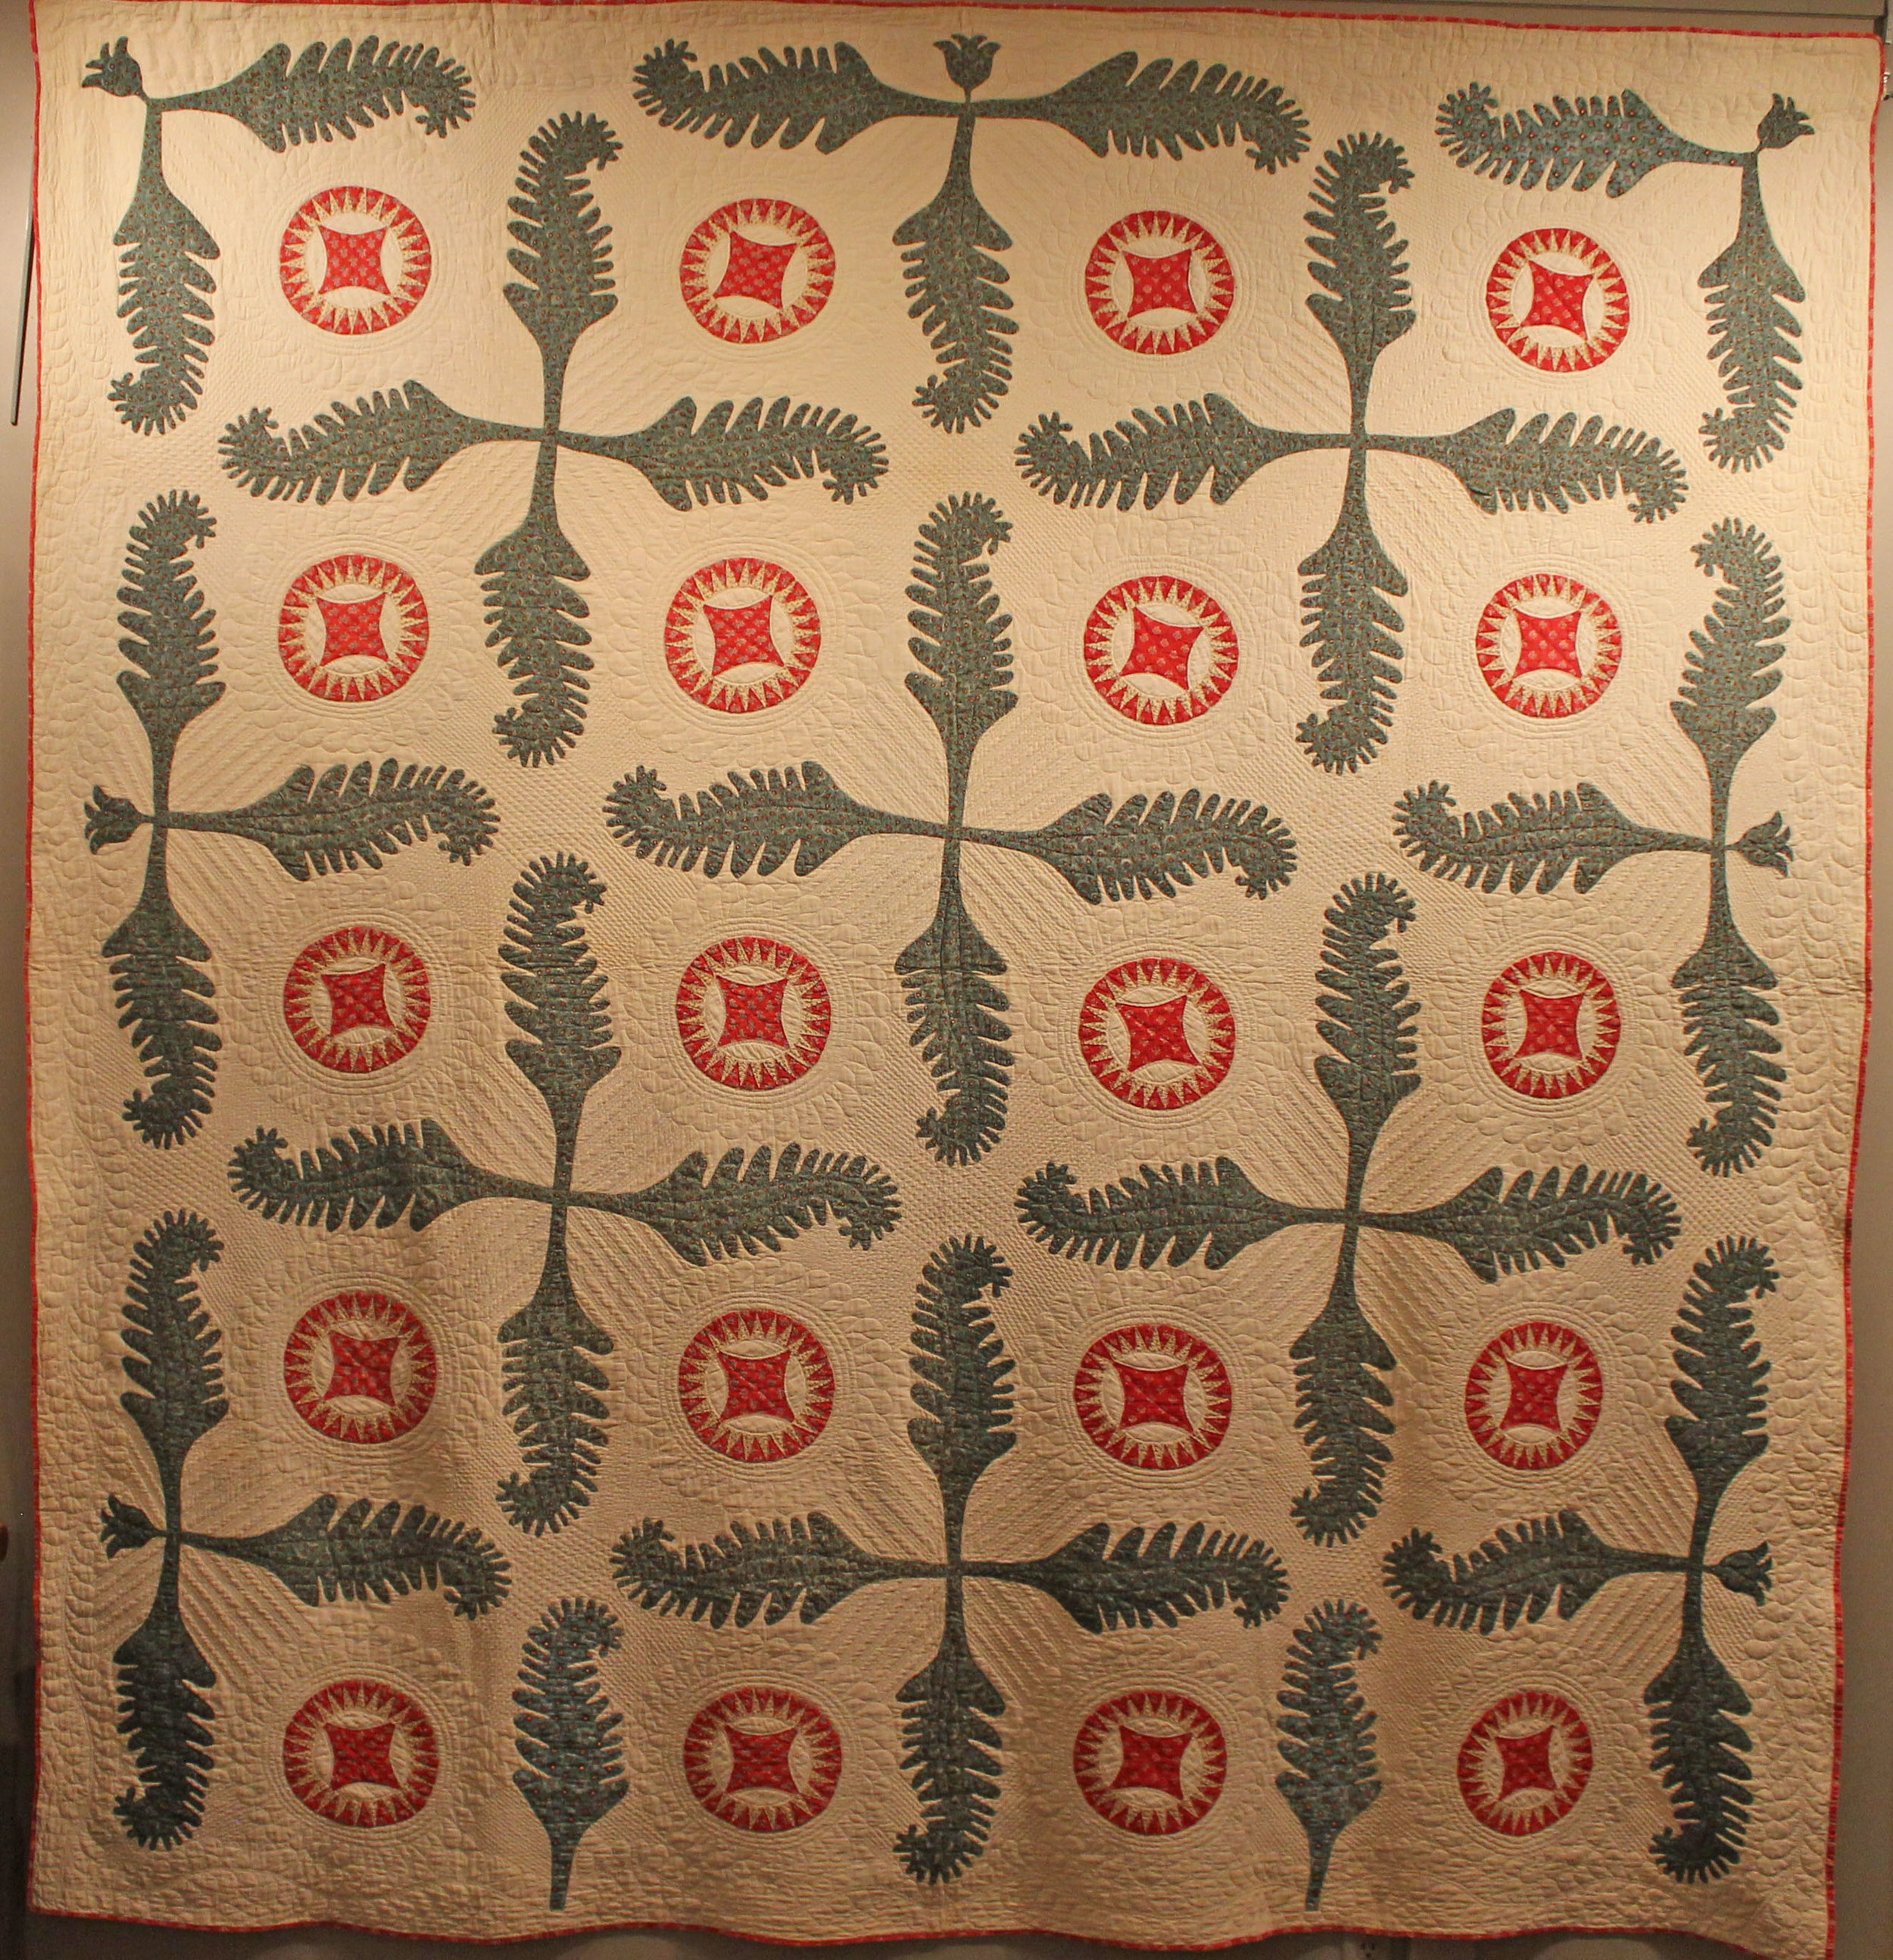 Princess Feather  c.1840, maker unknown, Ohio. From the Pat and Arlen Christ Collection at the New England Quilt Museum. One of the most stunning applique quilts I have ever seeb, I spent a lot of time just looking at it and absorbing the beauty. The hand applique and the hand quilting were superb.